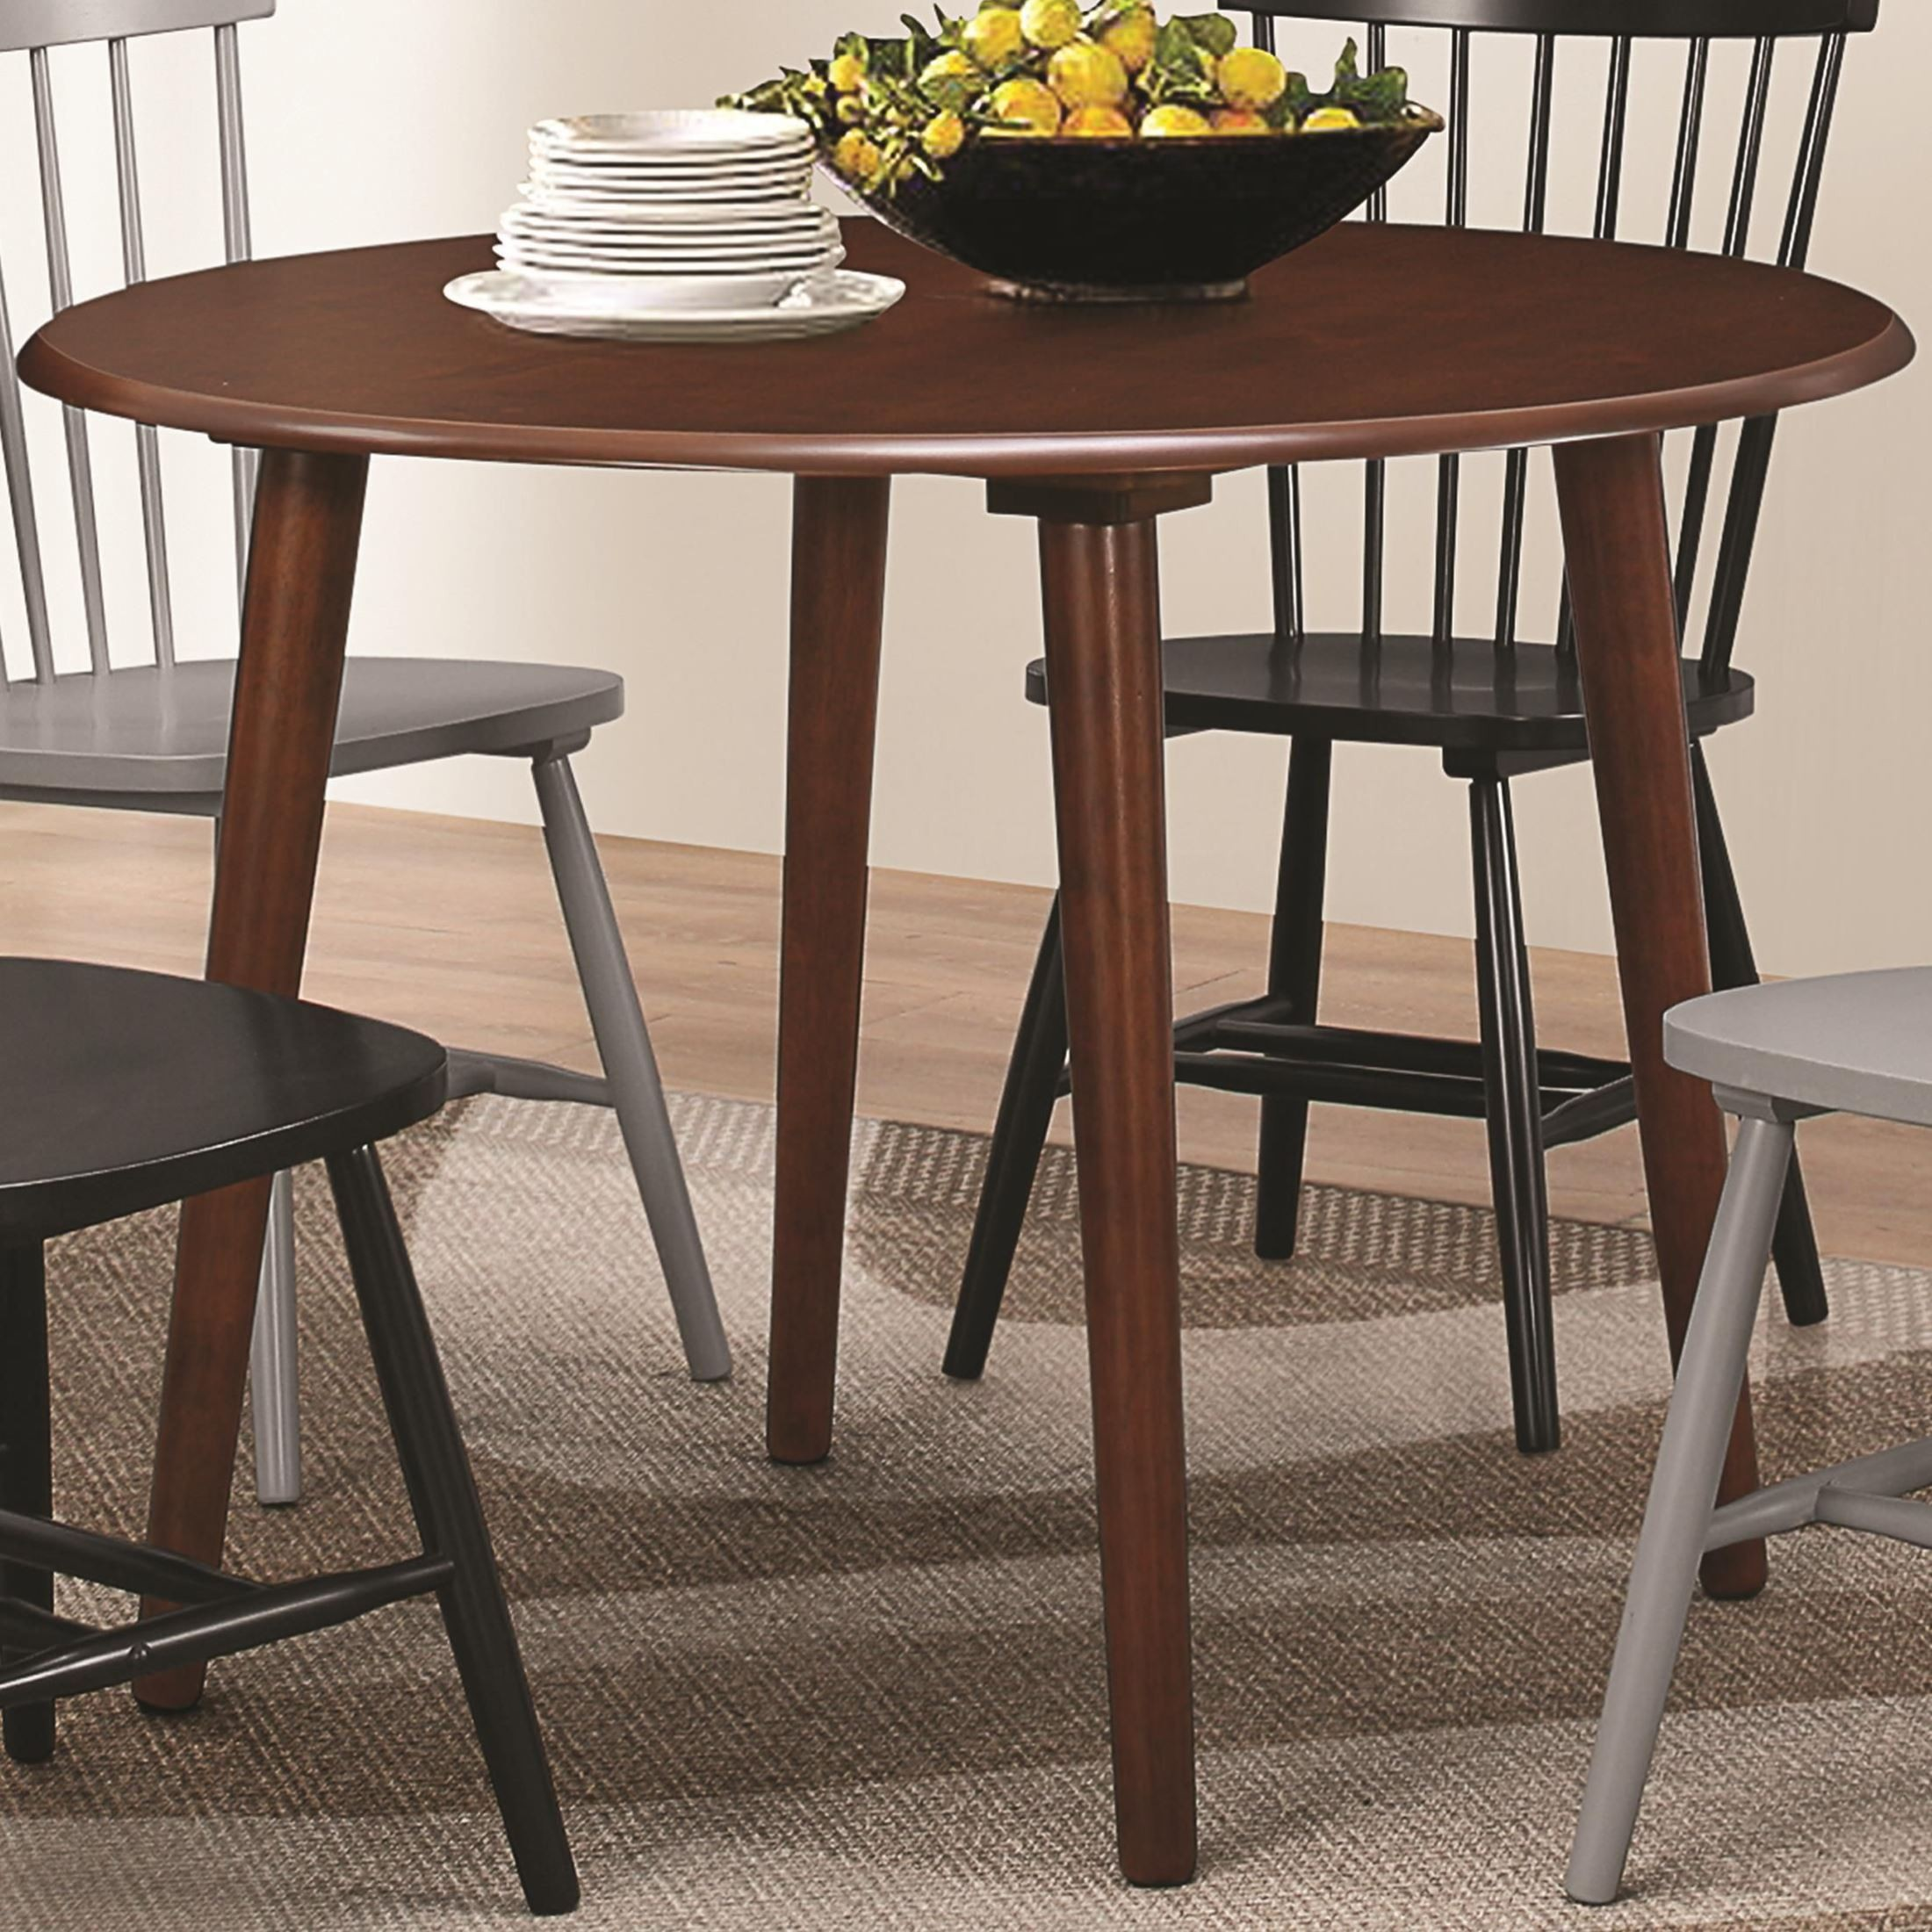 emmett walnut round dining table from coaster 104000 coleman furniture. Black Bedroom Furniture Sets. Home Design Ideas